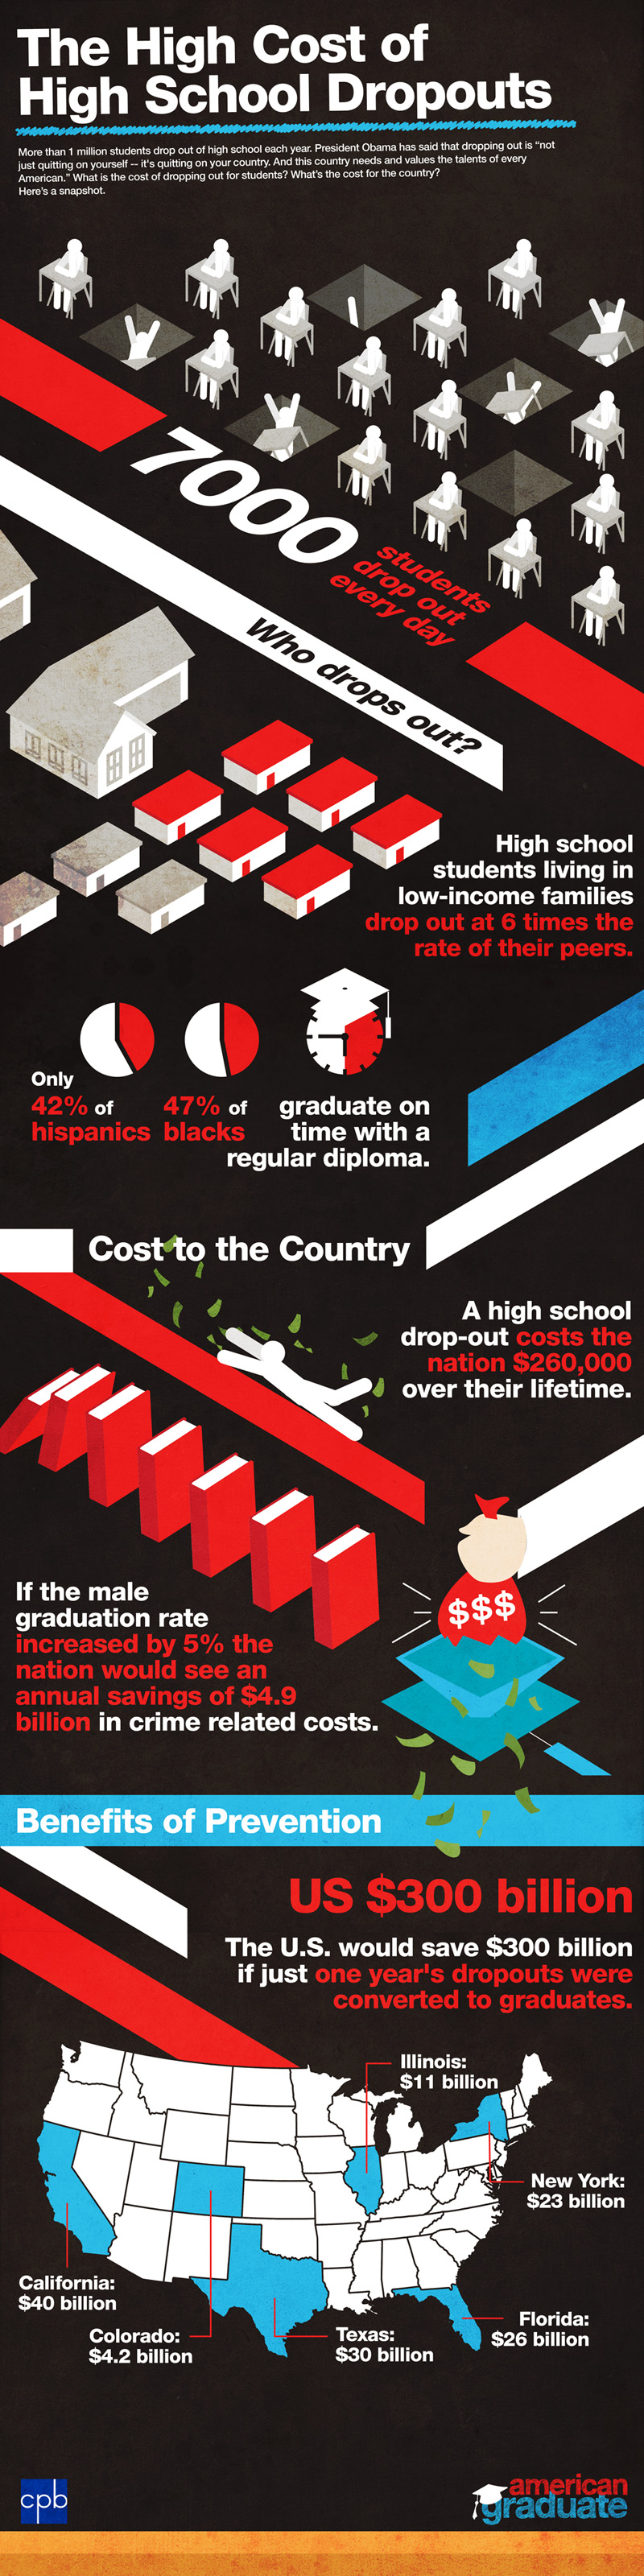 High Cost of Highschool Dropouts High school dropouts